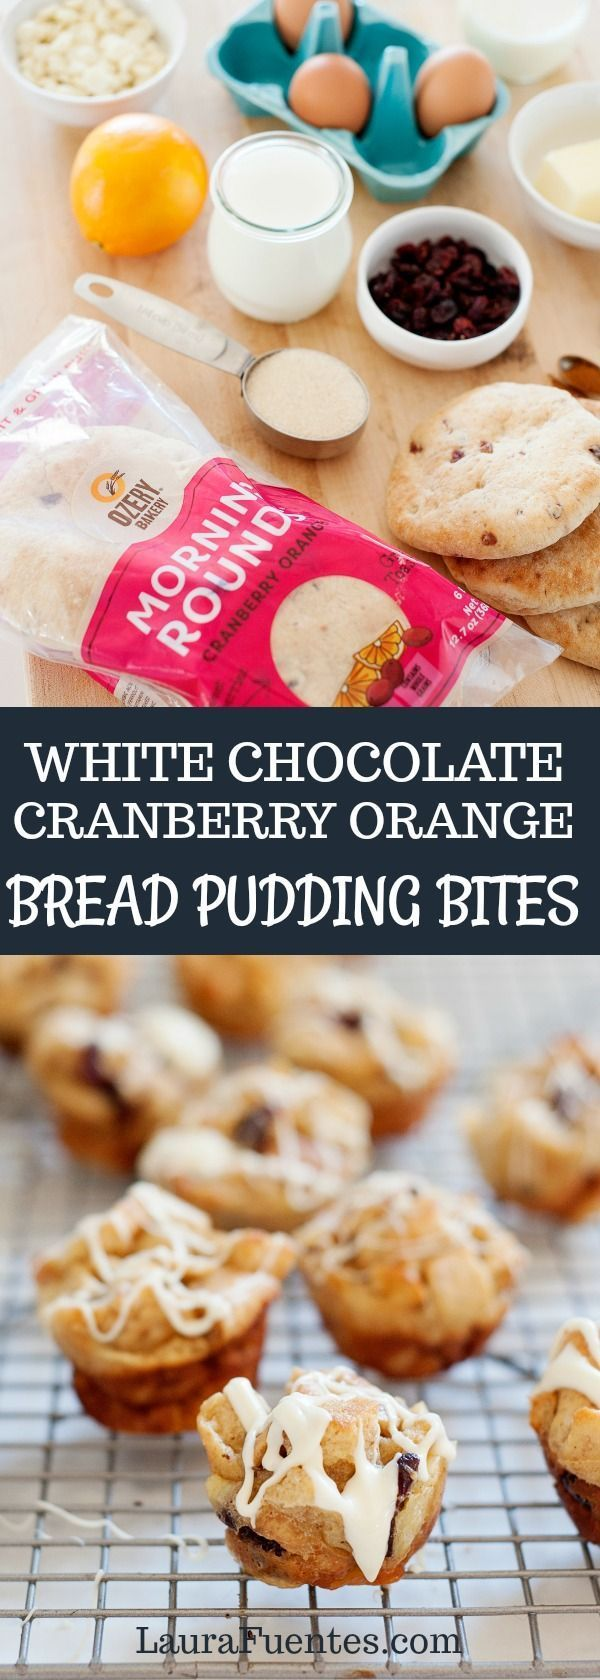 White Chocolate Cranberry Orange Bread Pudding Bites for dessert or Christmas breakfast! Little bites of soft, light bread pudding, decked with cranberries, fresh hints of orange, and drizzled in a homemade white chocolate glaze.#ozerybakery #ozery #ozerycreations #ad